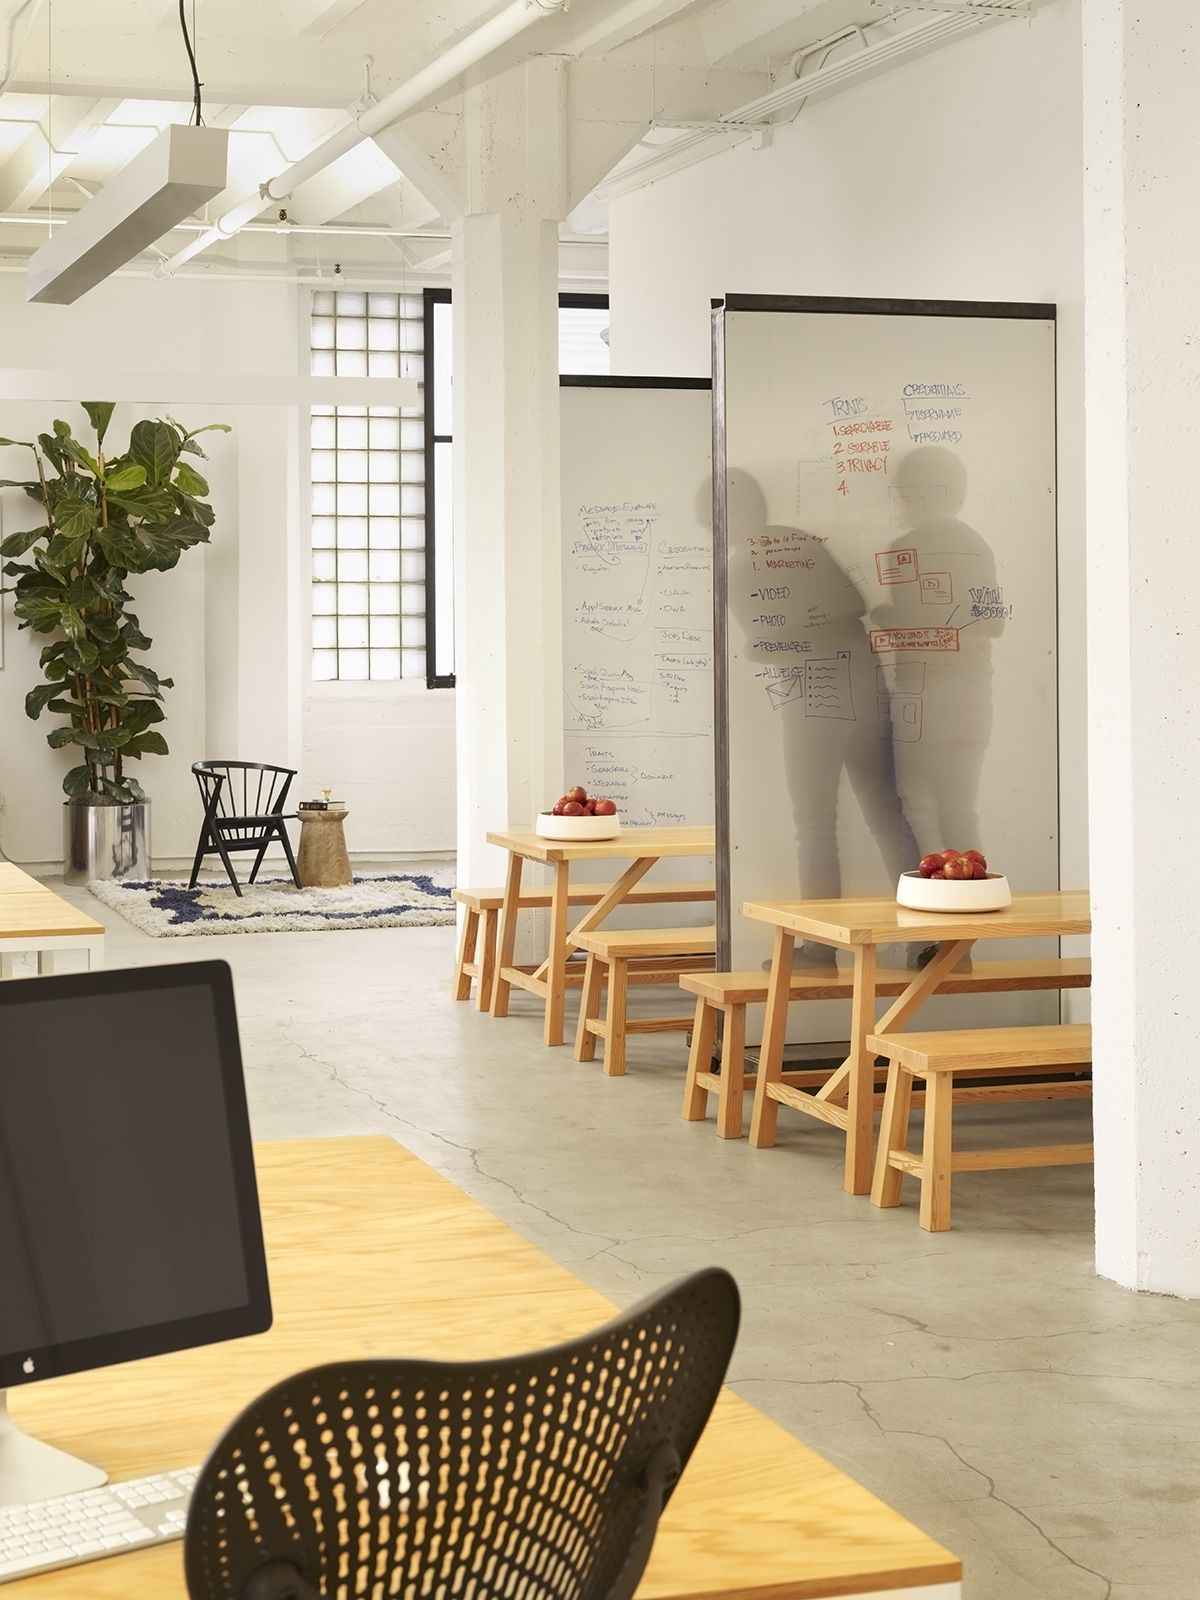 Modernes Büro A Look Inside Hightail S Stylish San Francisco Office Workspaces